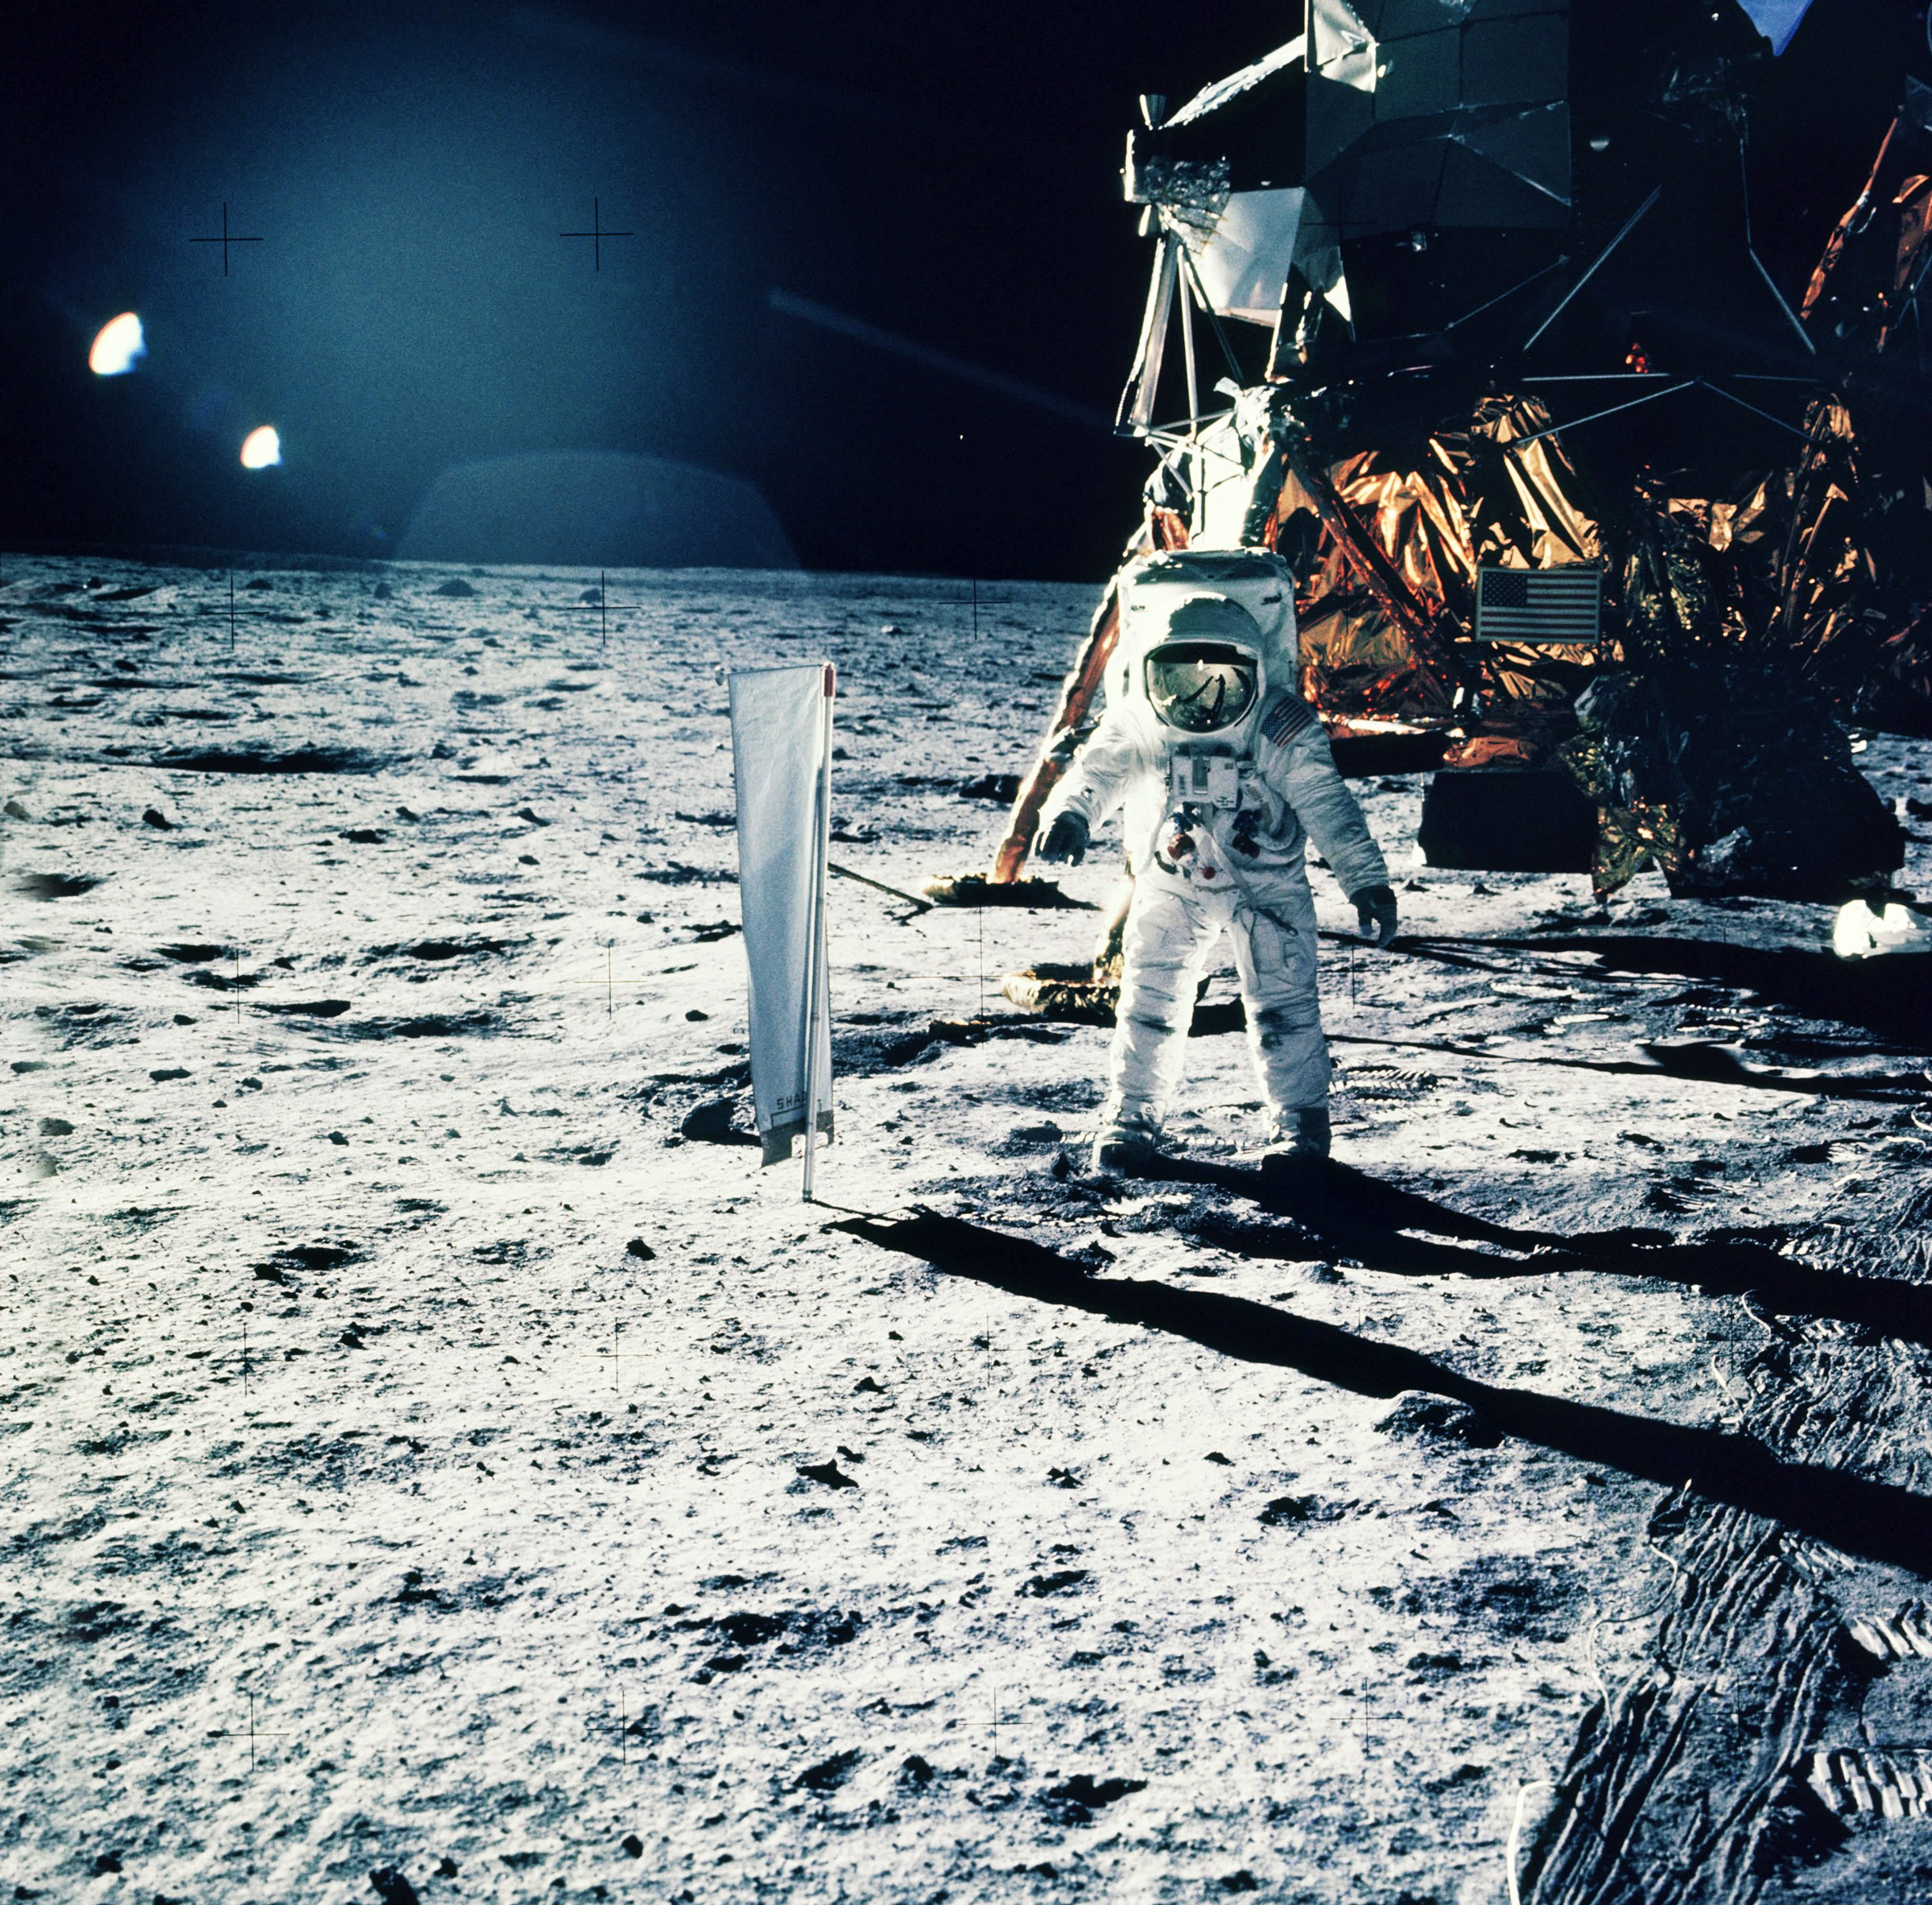 A Weekend Walk on the Moon